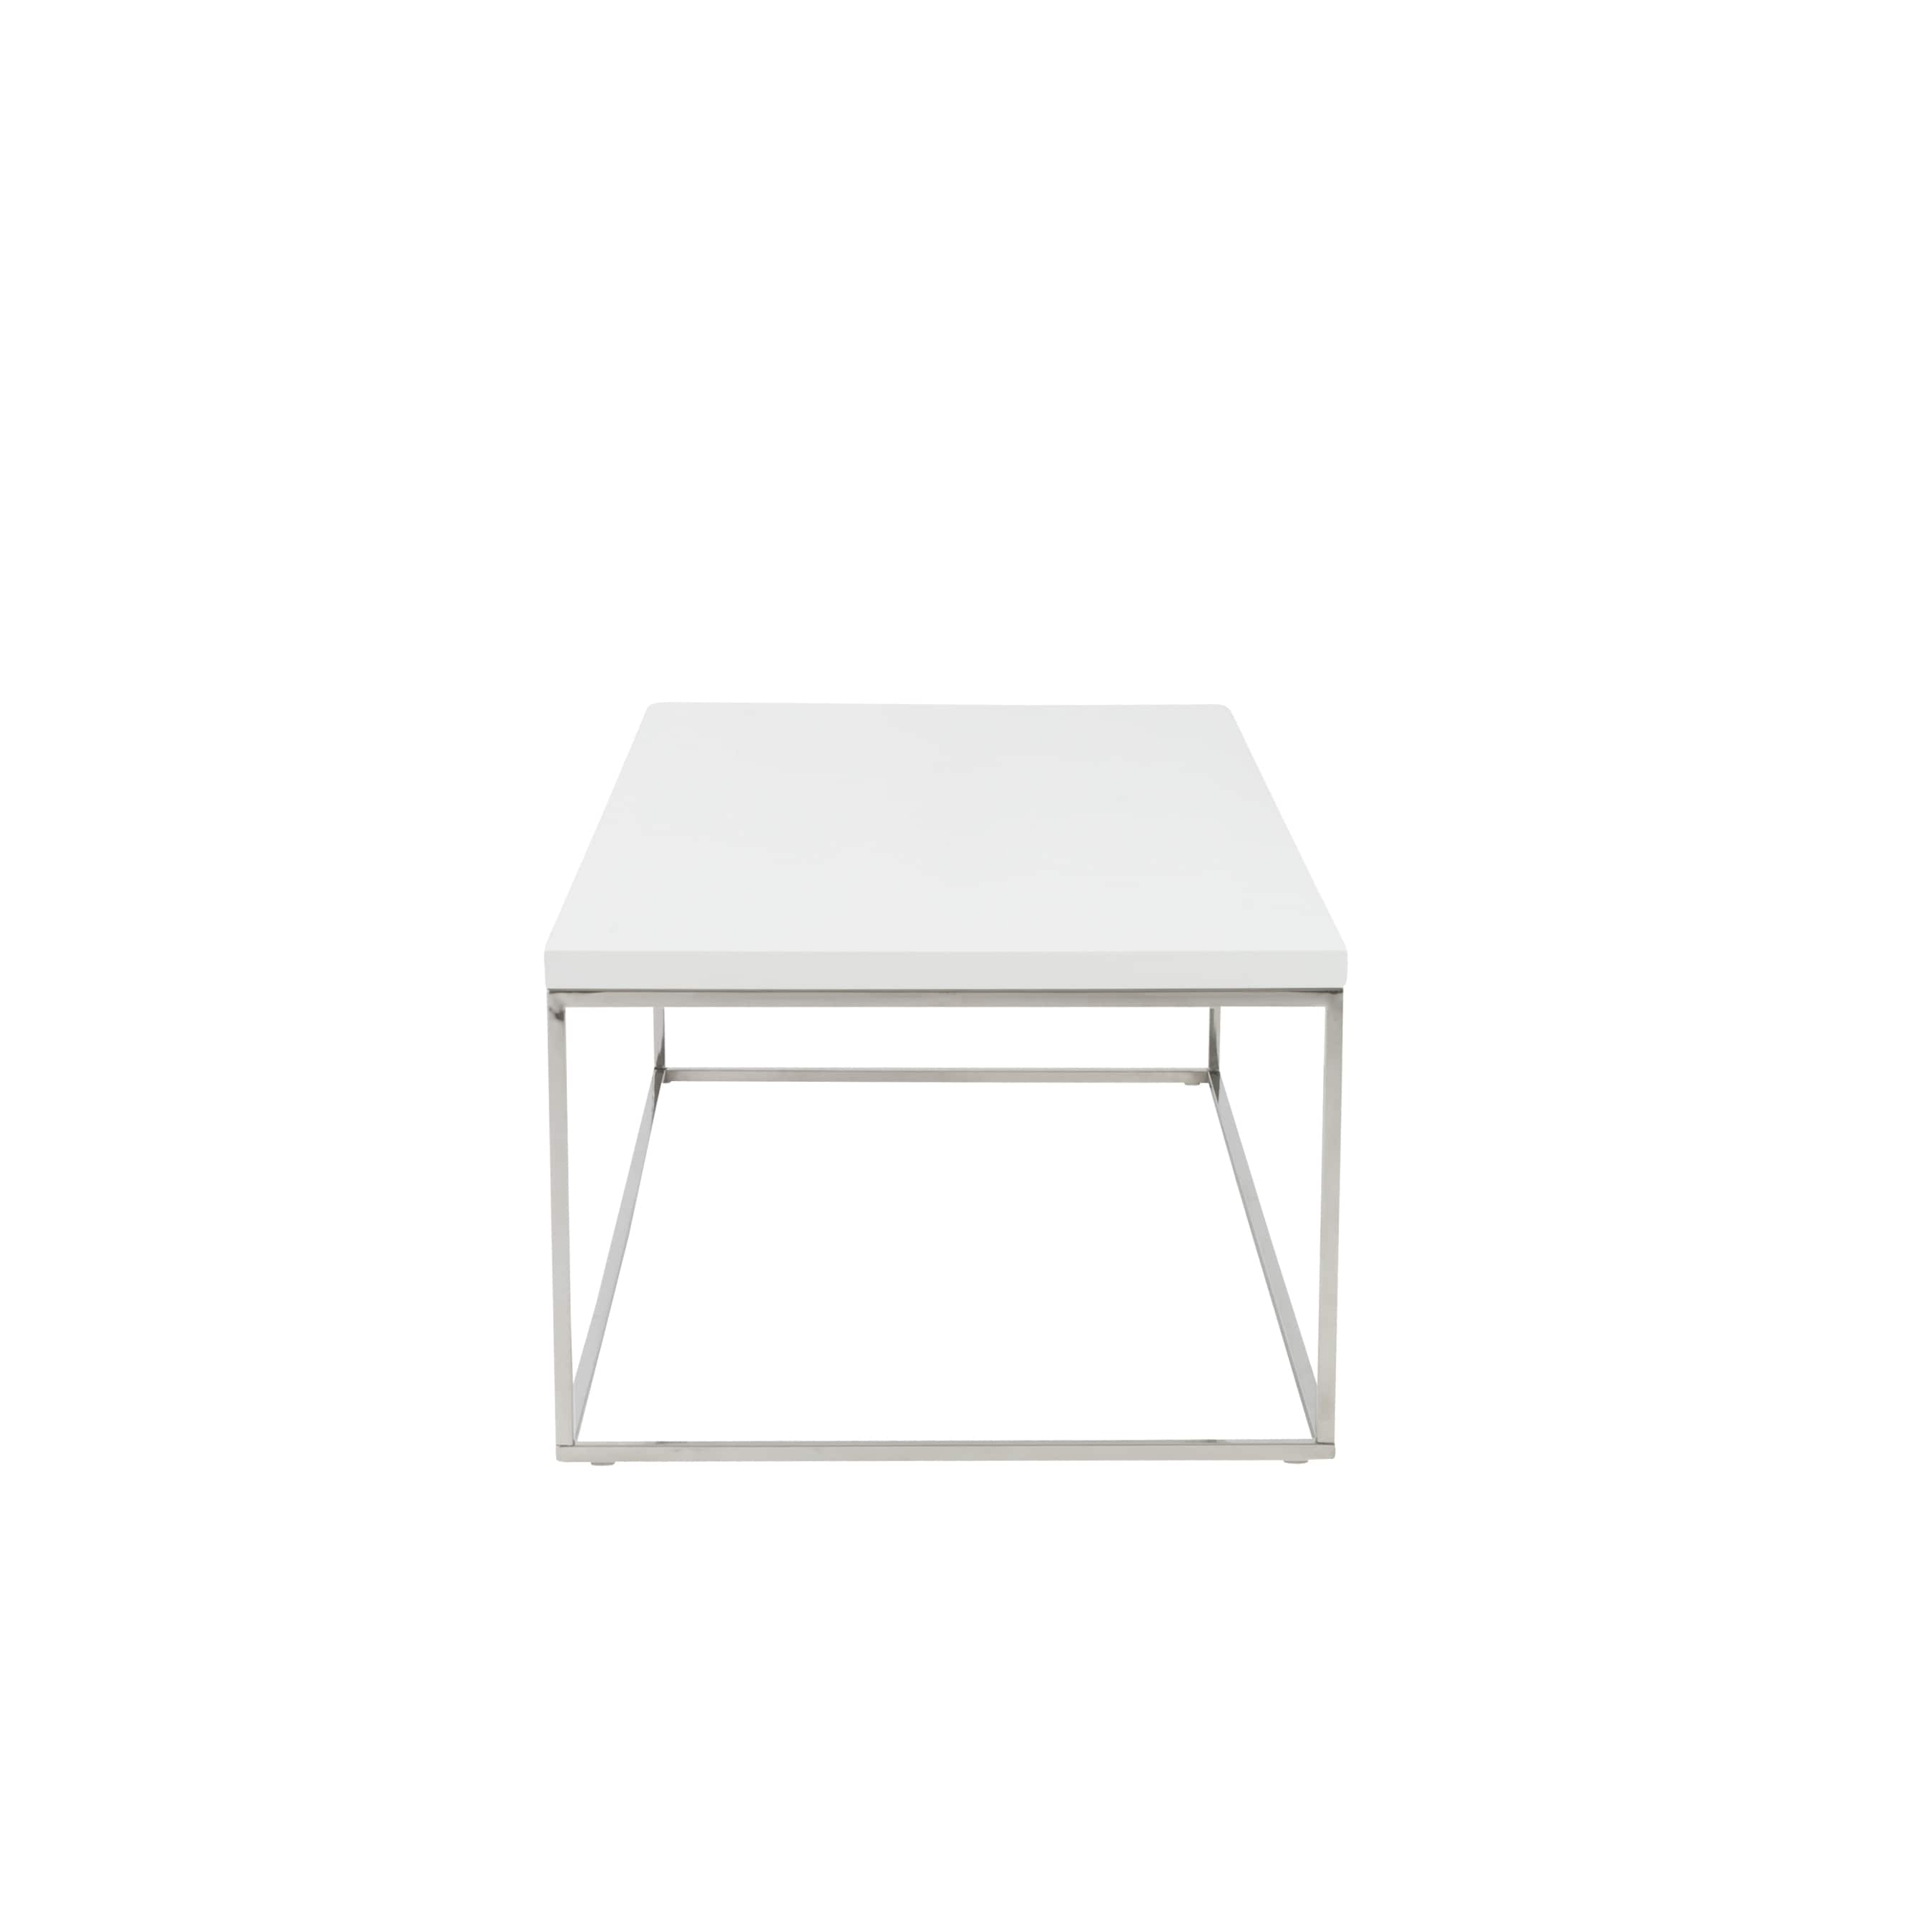 sale charming thin stand image modern for glass white nightstands inch room silver of small antique living coffee set tall full sets appealing tables side bedside round couch drawers table occasional wood with night cheap style bedroomfurniture square lacquer accent end little size and nightstand